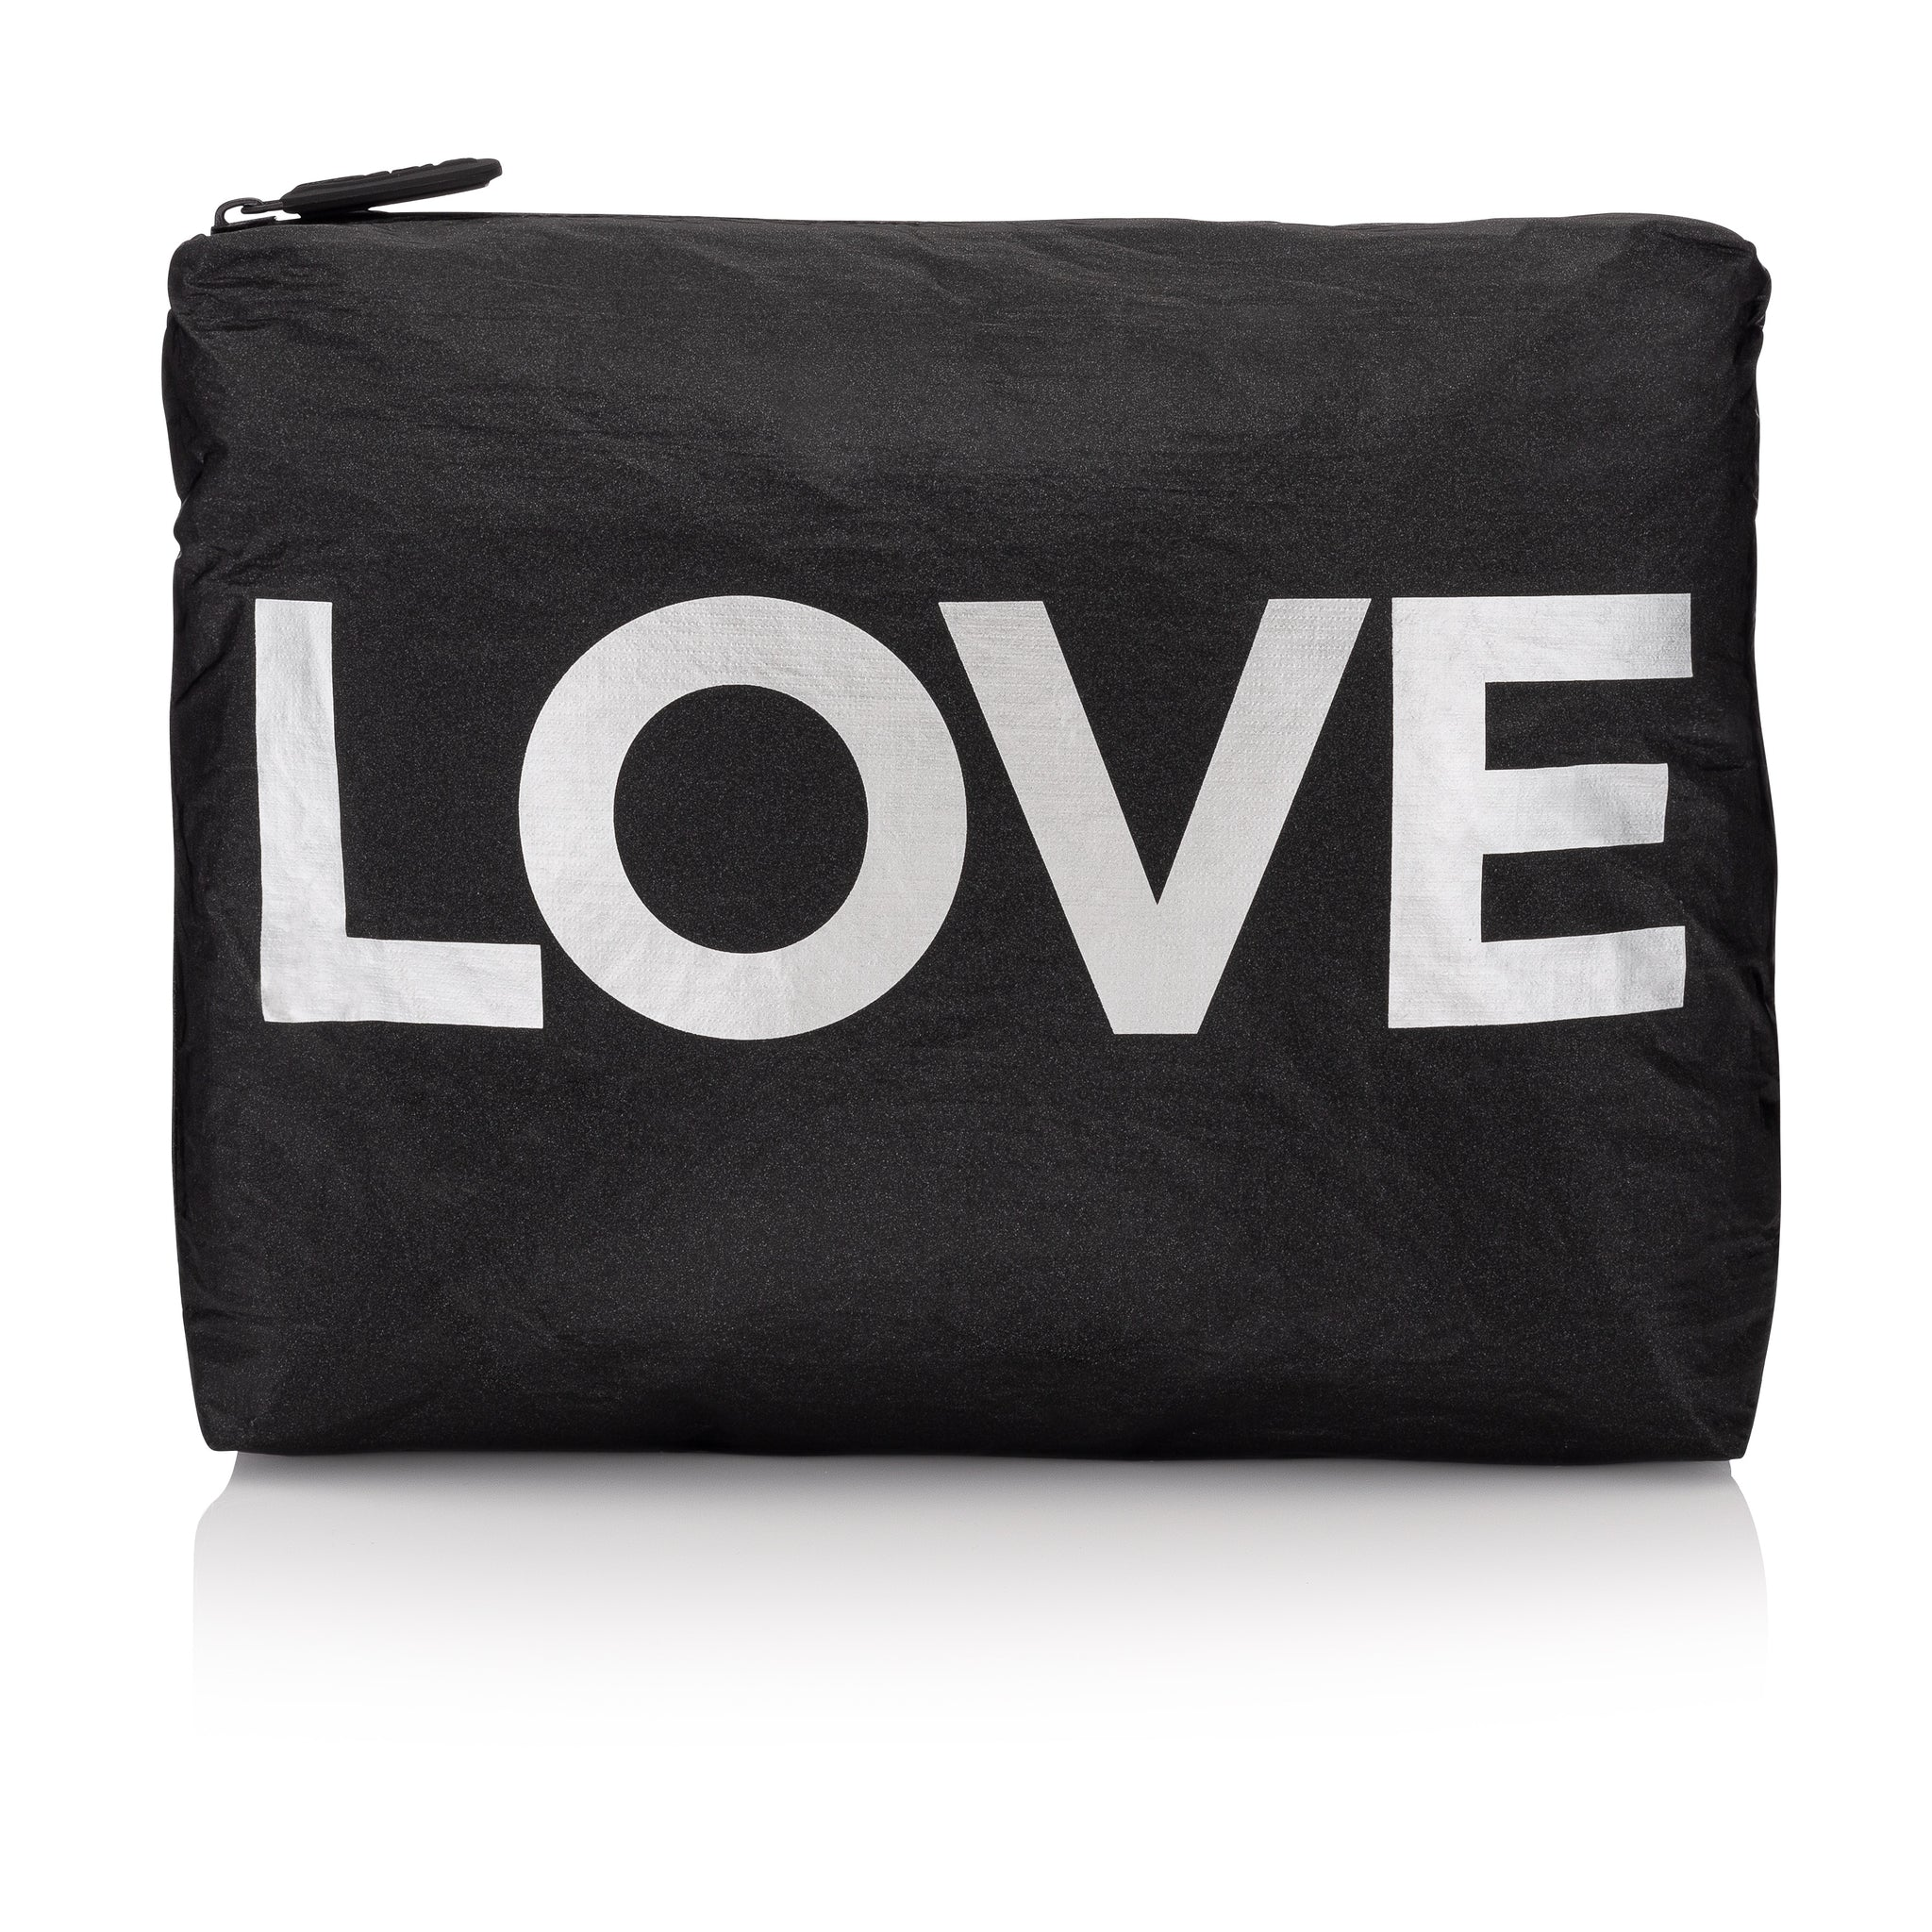 "Medium Pack - Black with Metallic Silver ""LOVE"""